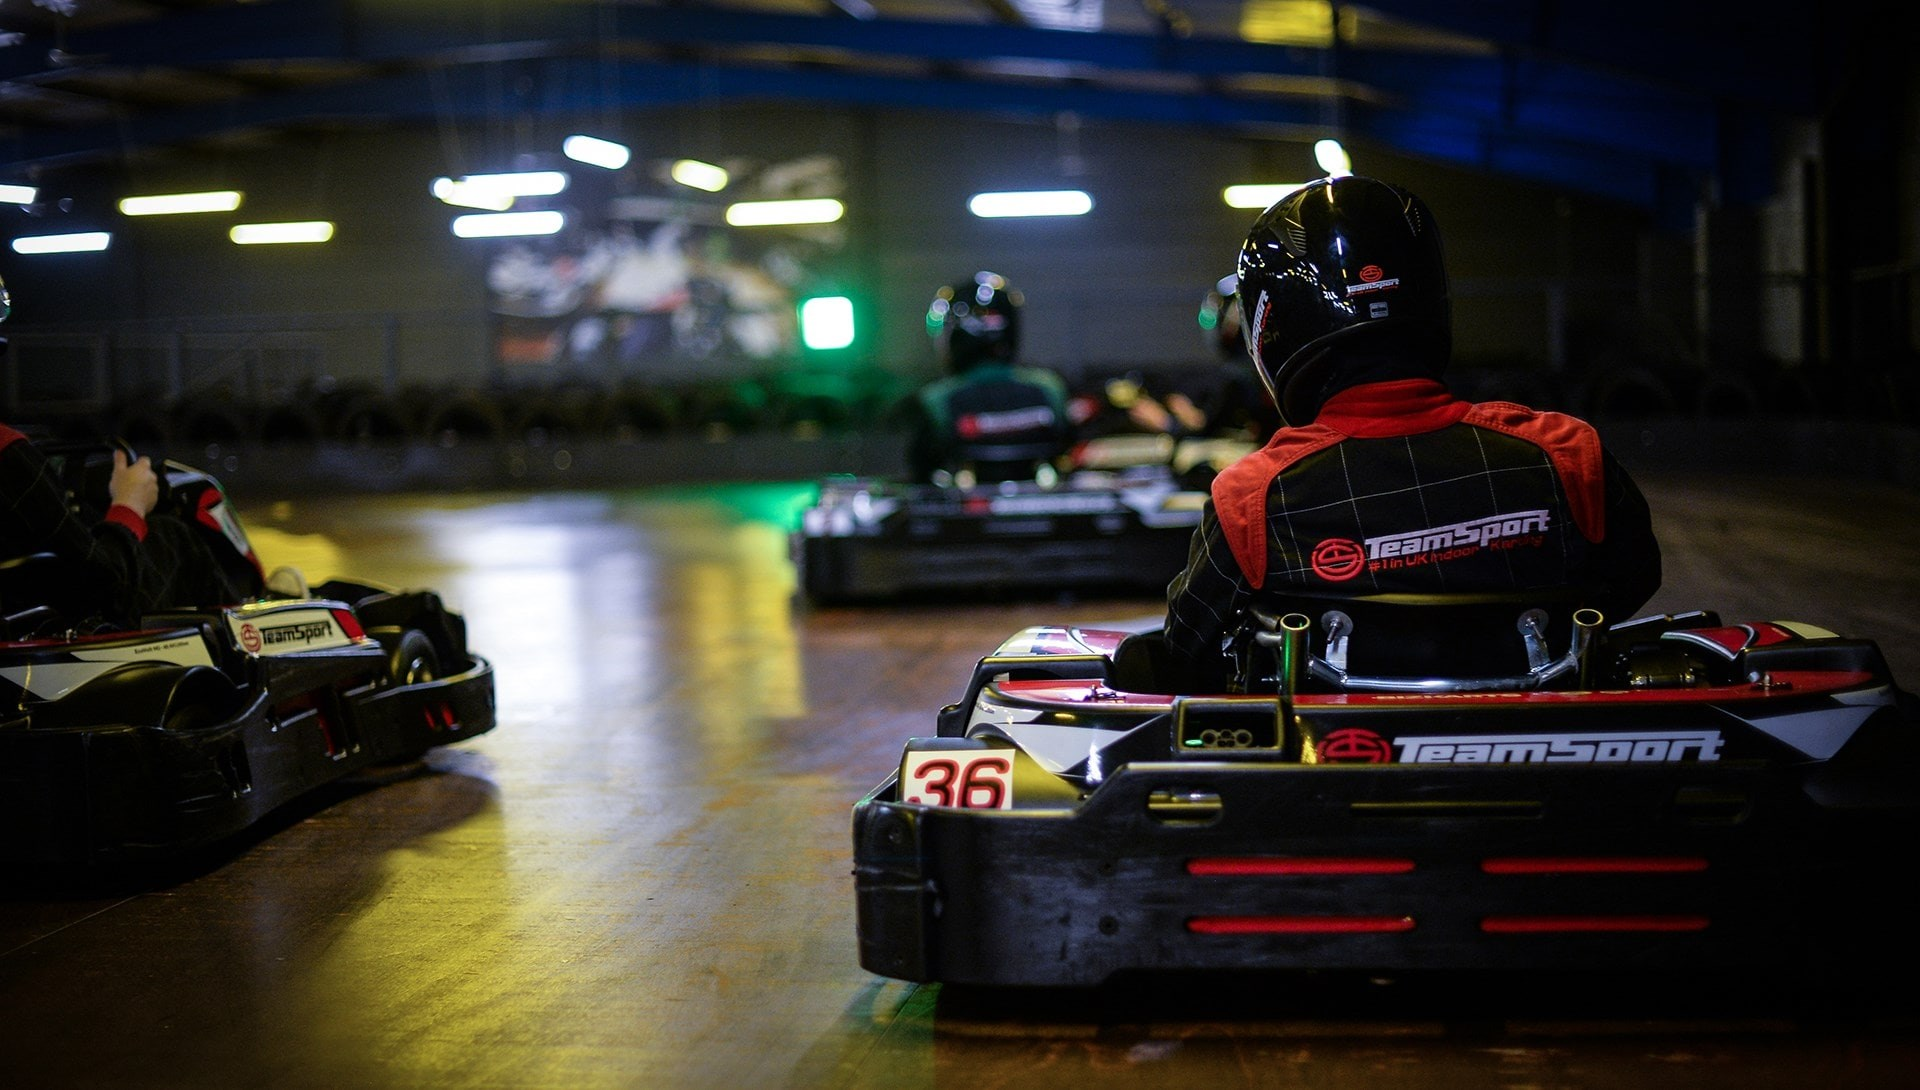 UNBEATABLE GO KARTING OFFERS - Unlimited Karting